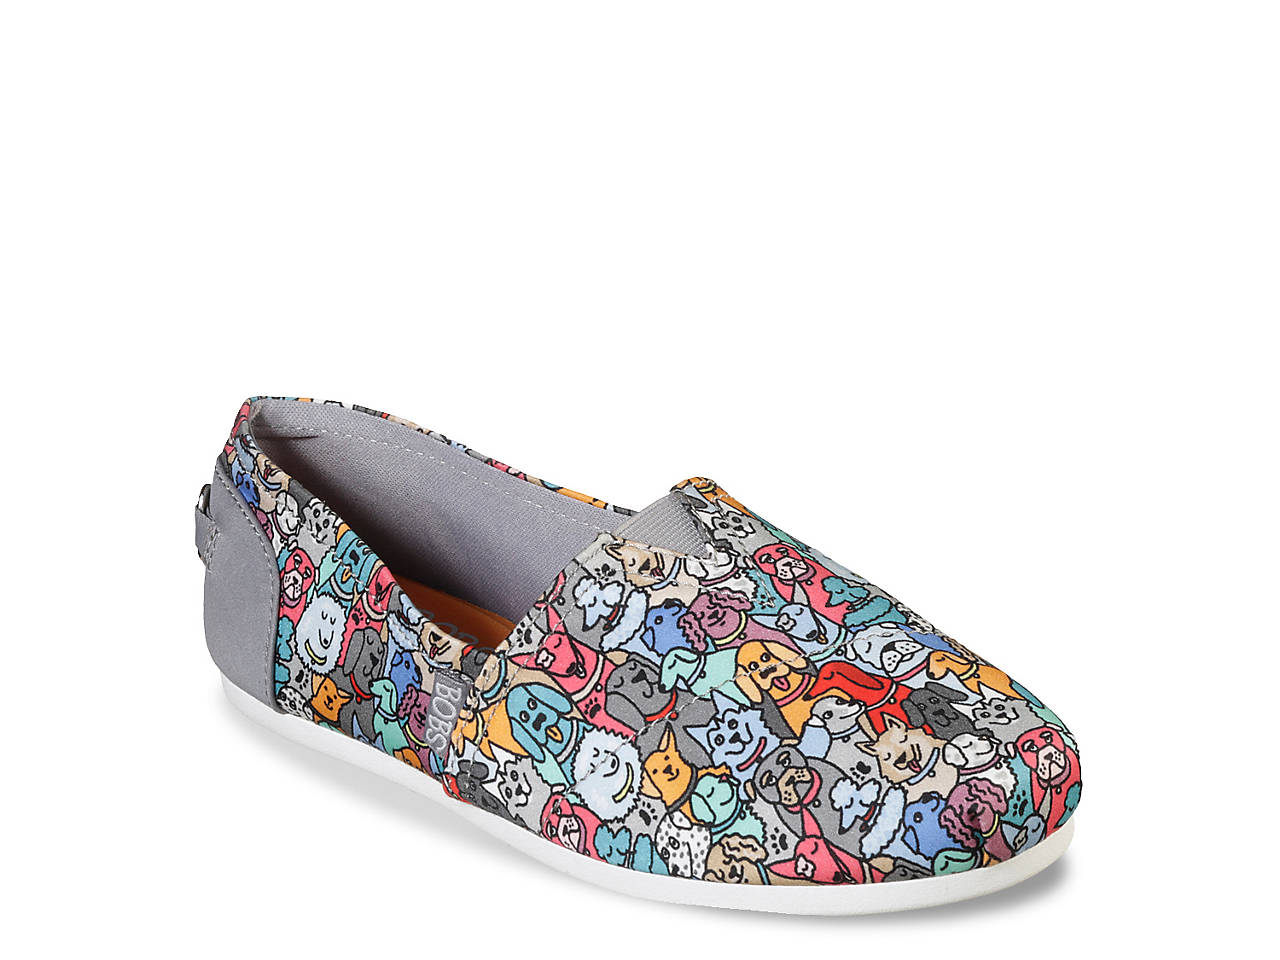 76ef036ea8b0 BOBS from Skechers Plush Woof Party Slip-On Women s Shoes